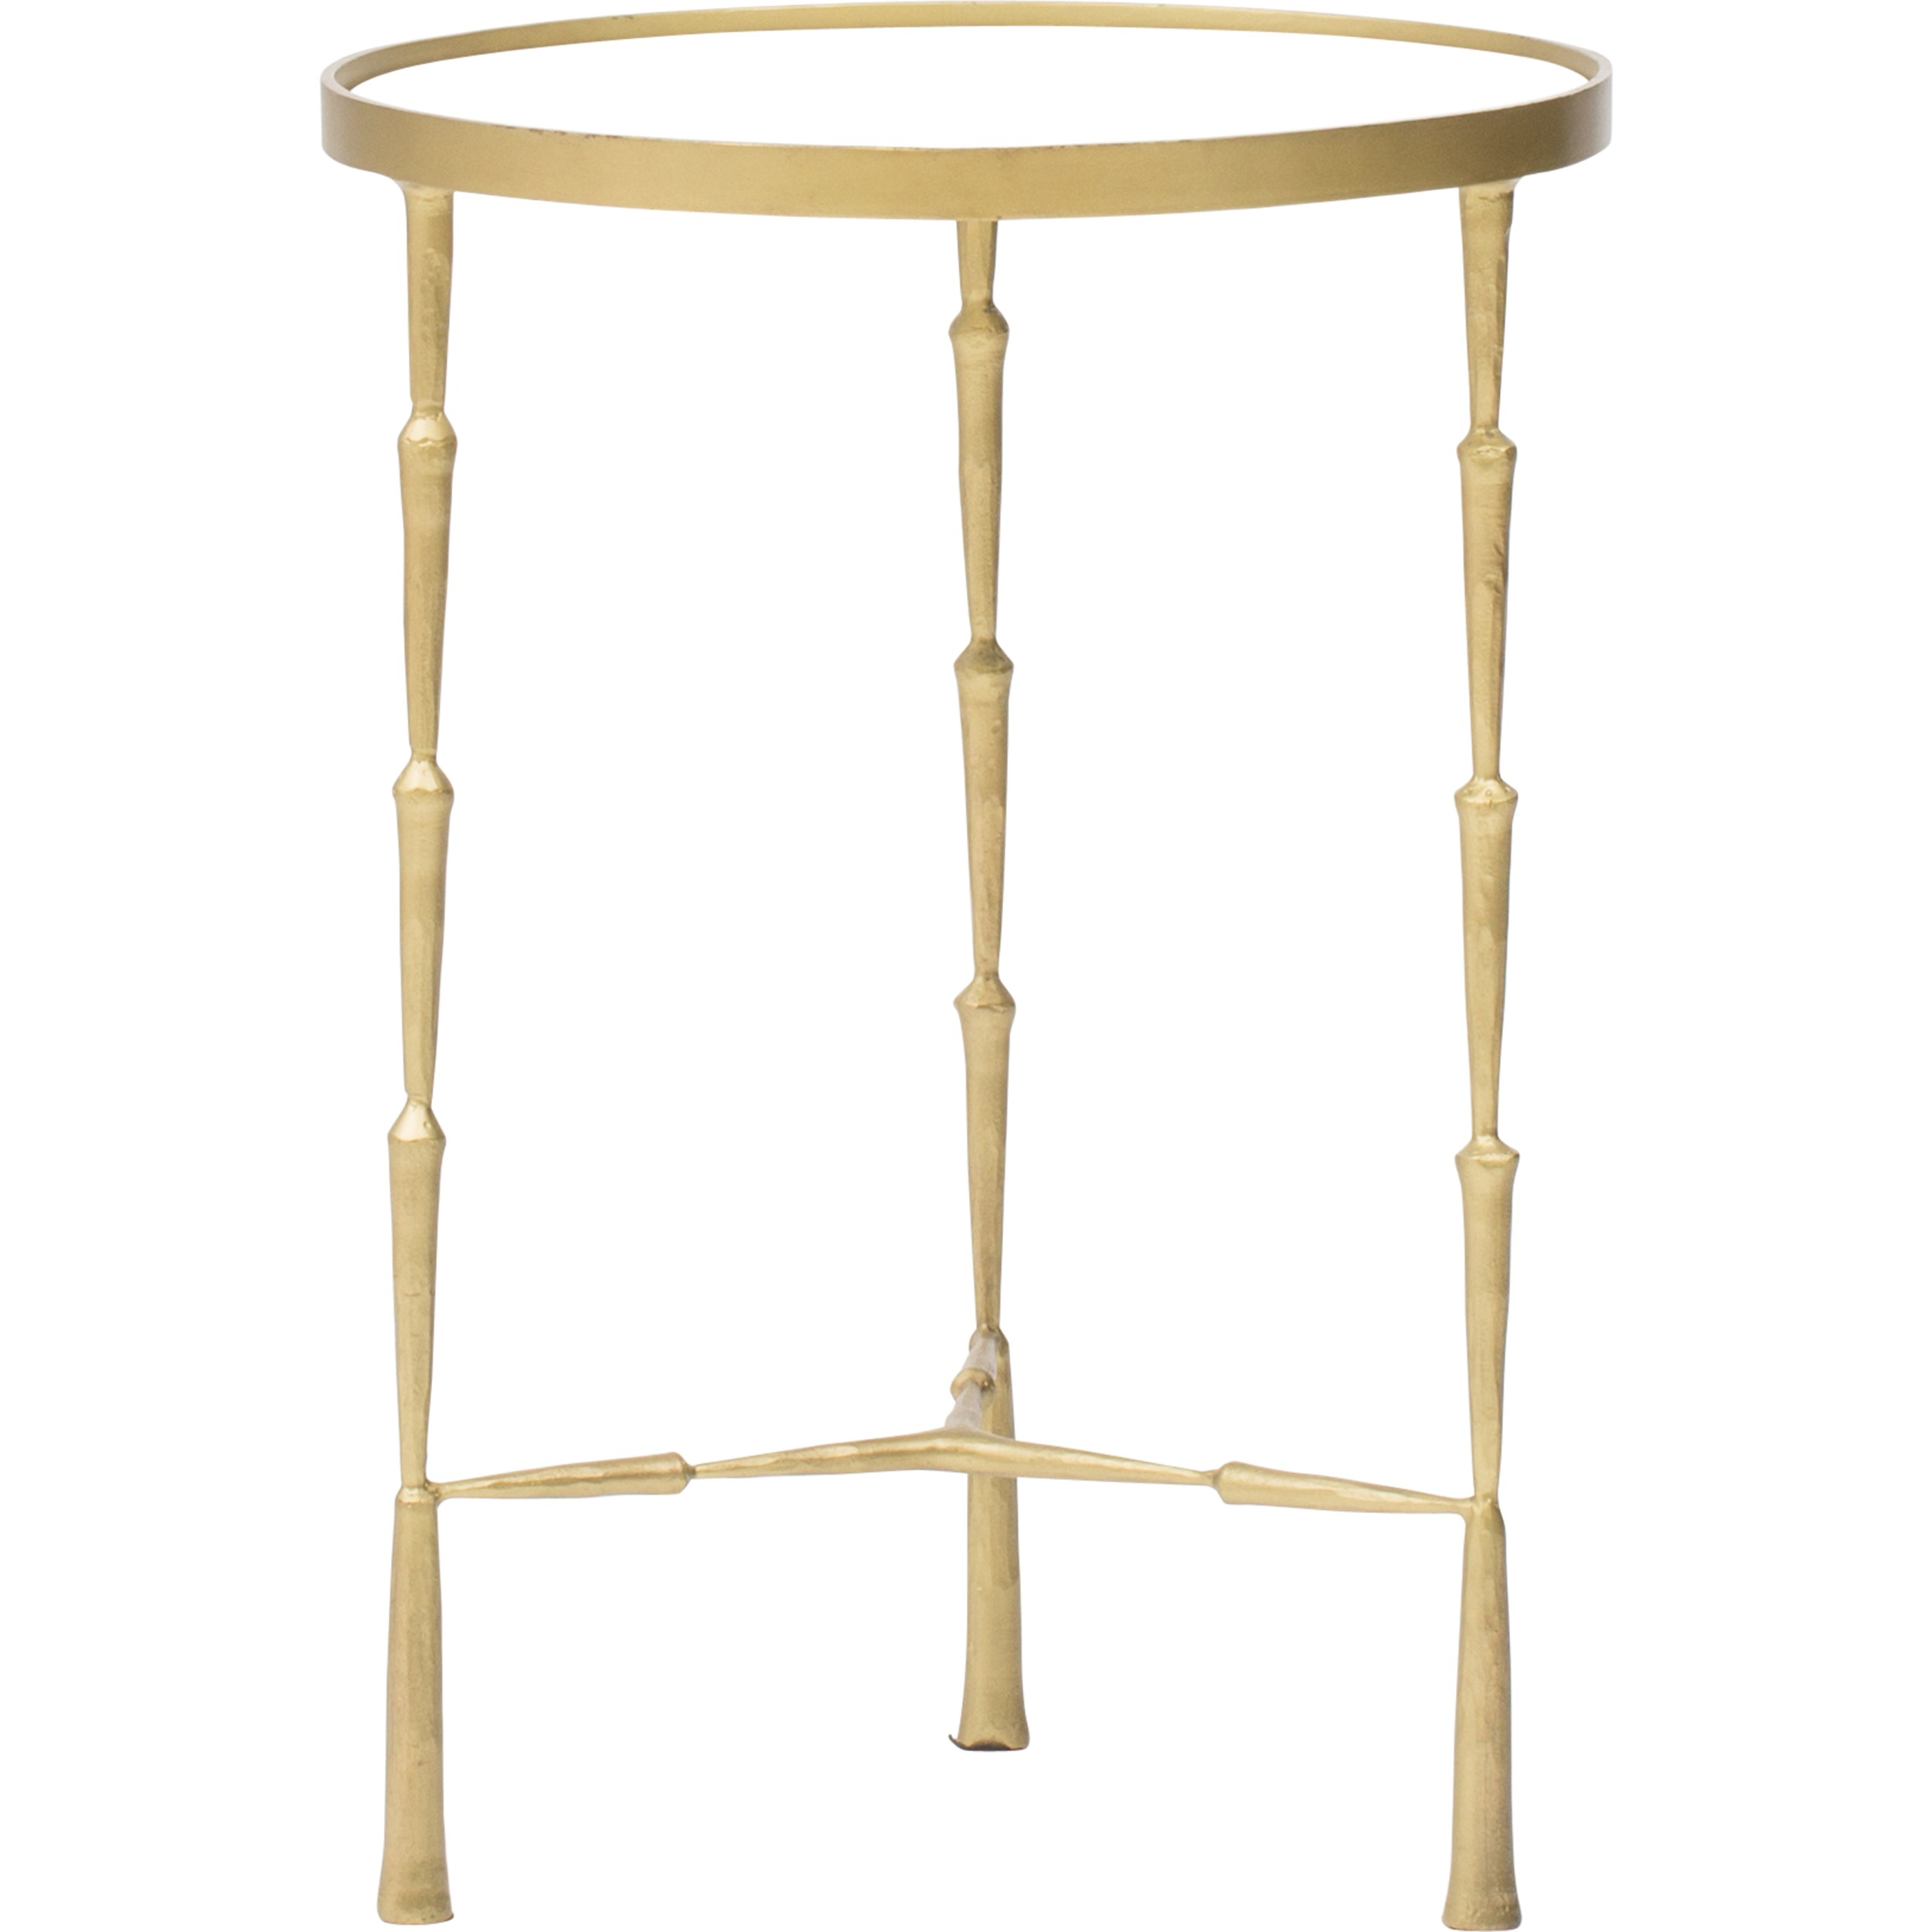 spike accent table brass outdoor bar sets clearance rustic sliding door dale tiffany glass wall art diy side inch round tablecloth navy blue porch furniture sheesham wood console